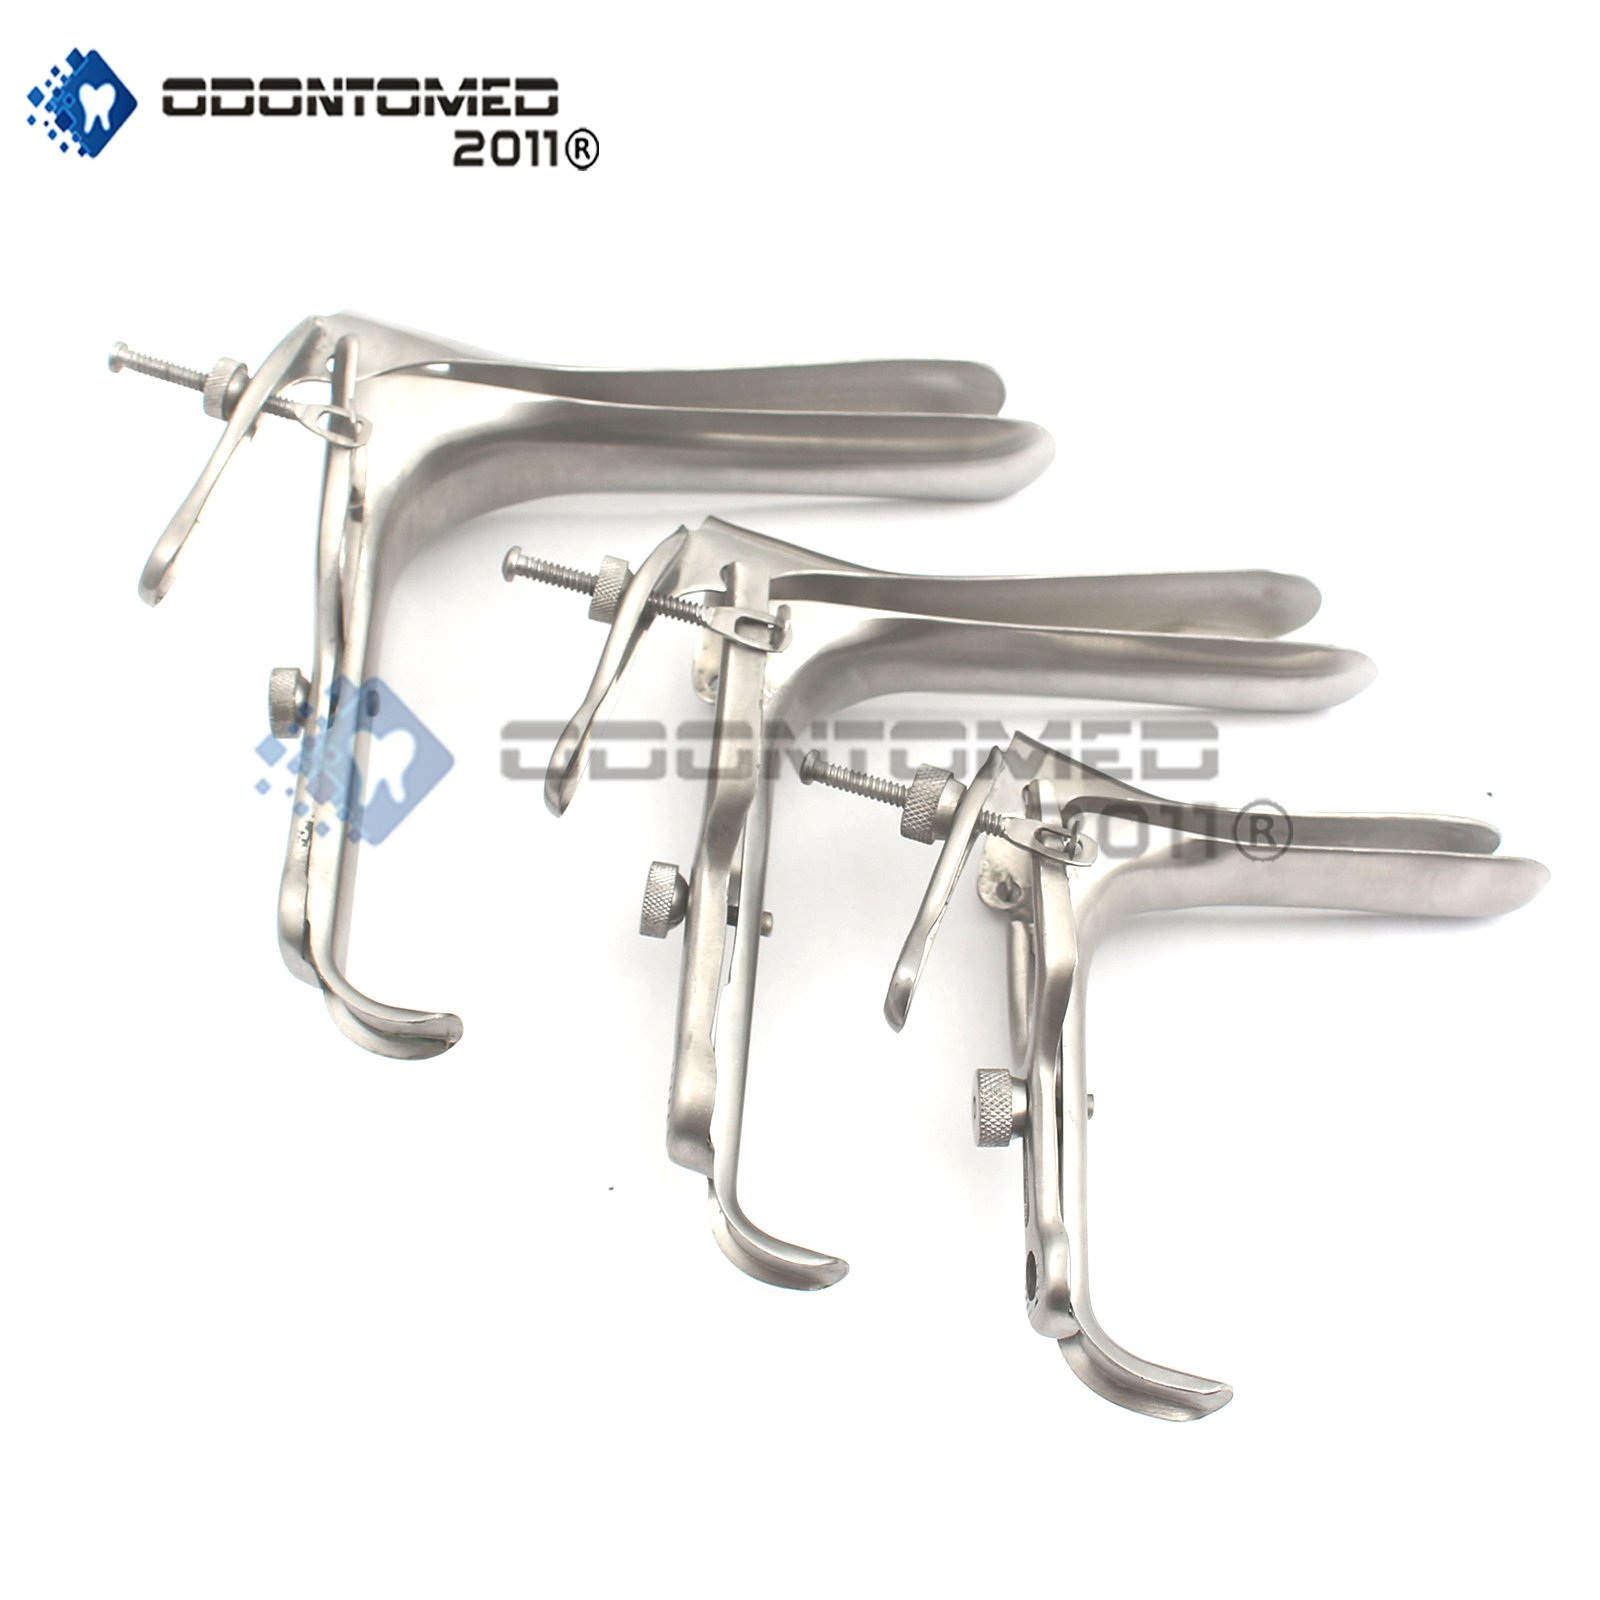 OdontoMed2011® Pederson Speculum Multiple Size and Color Options (Silver, S,M,L)